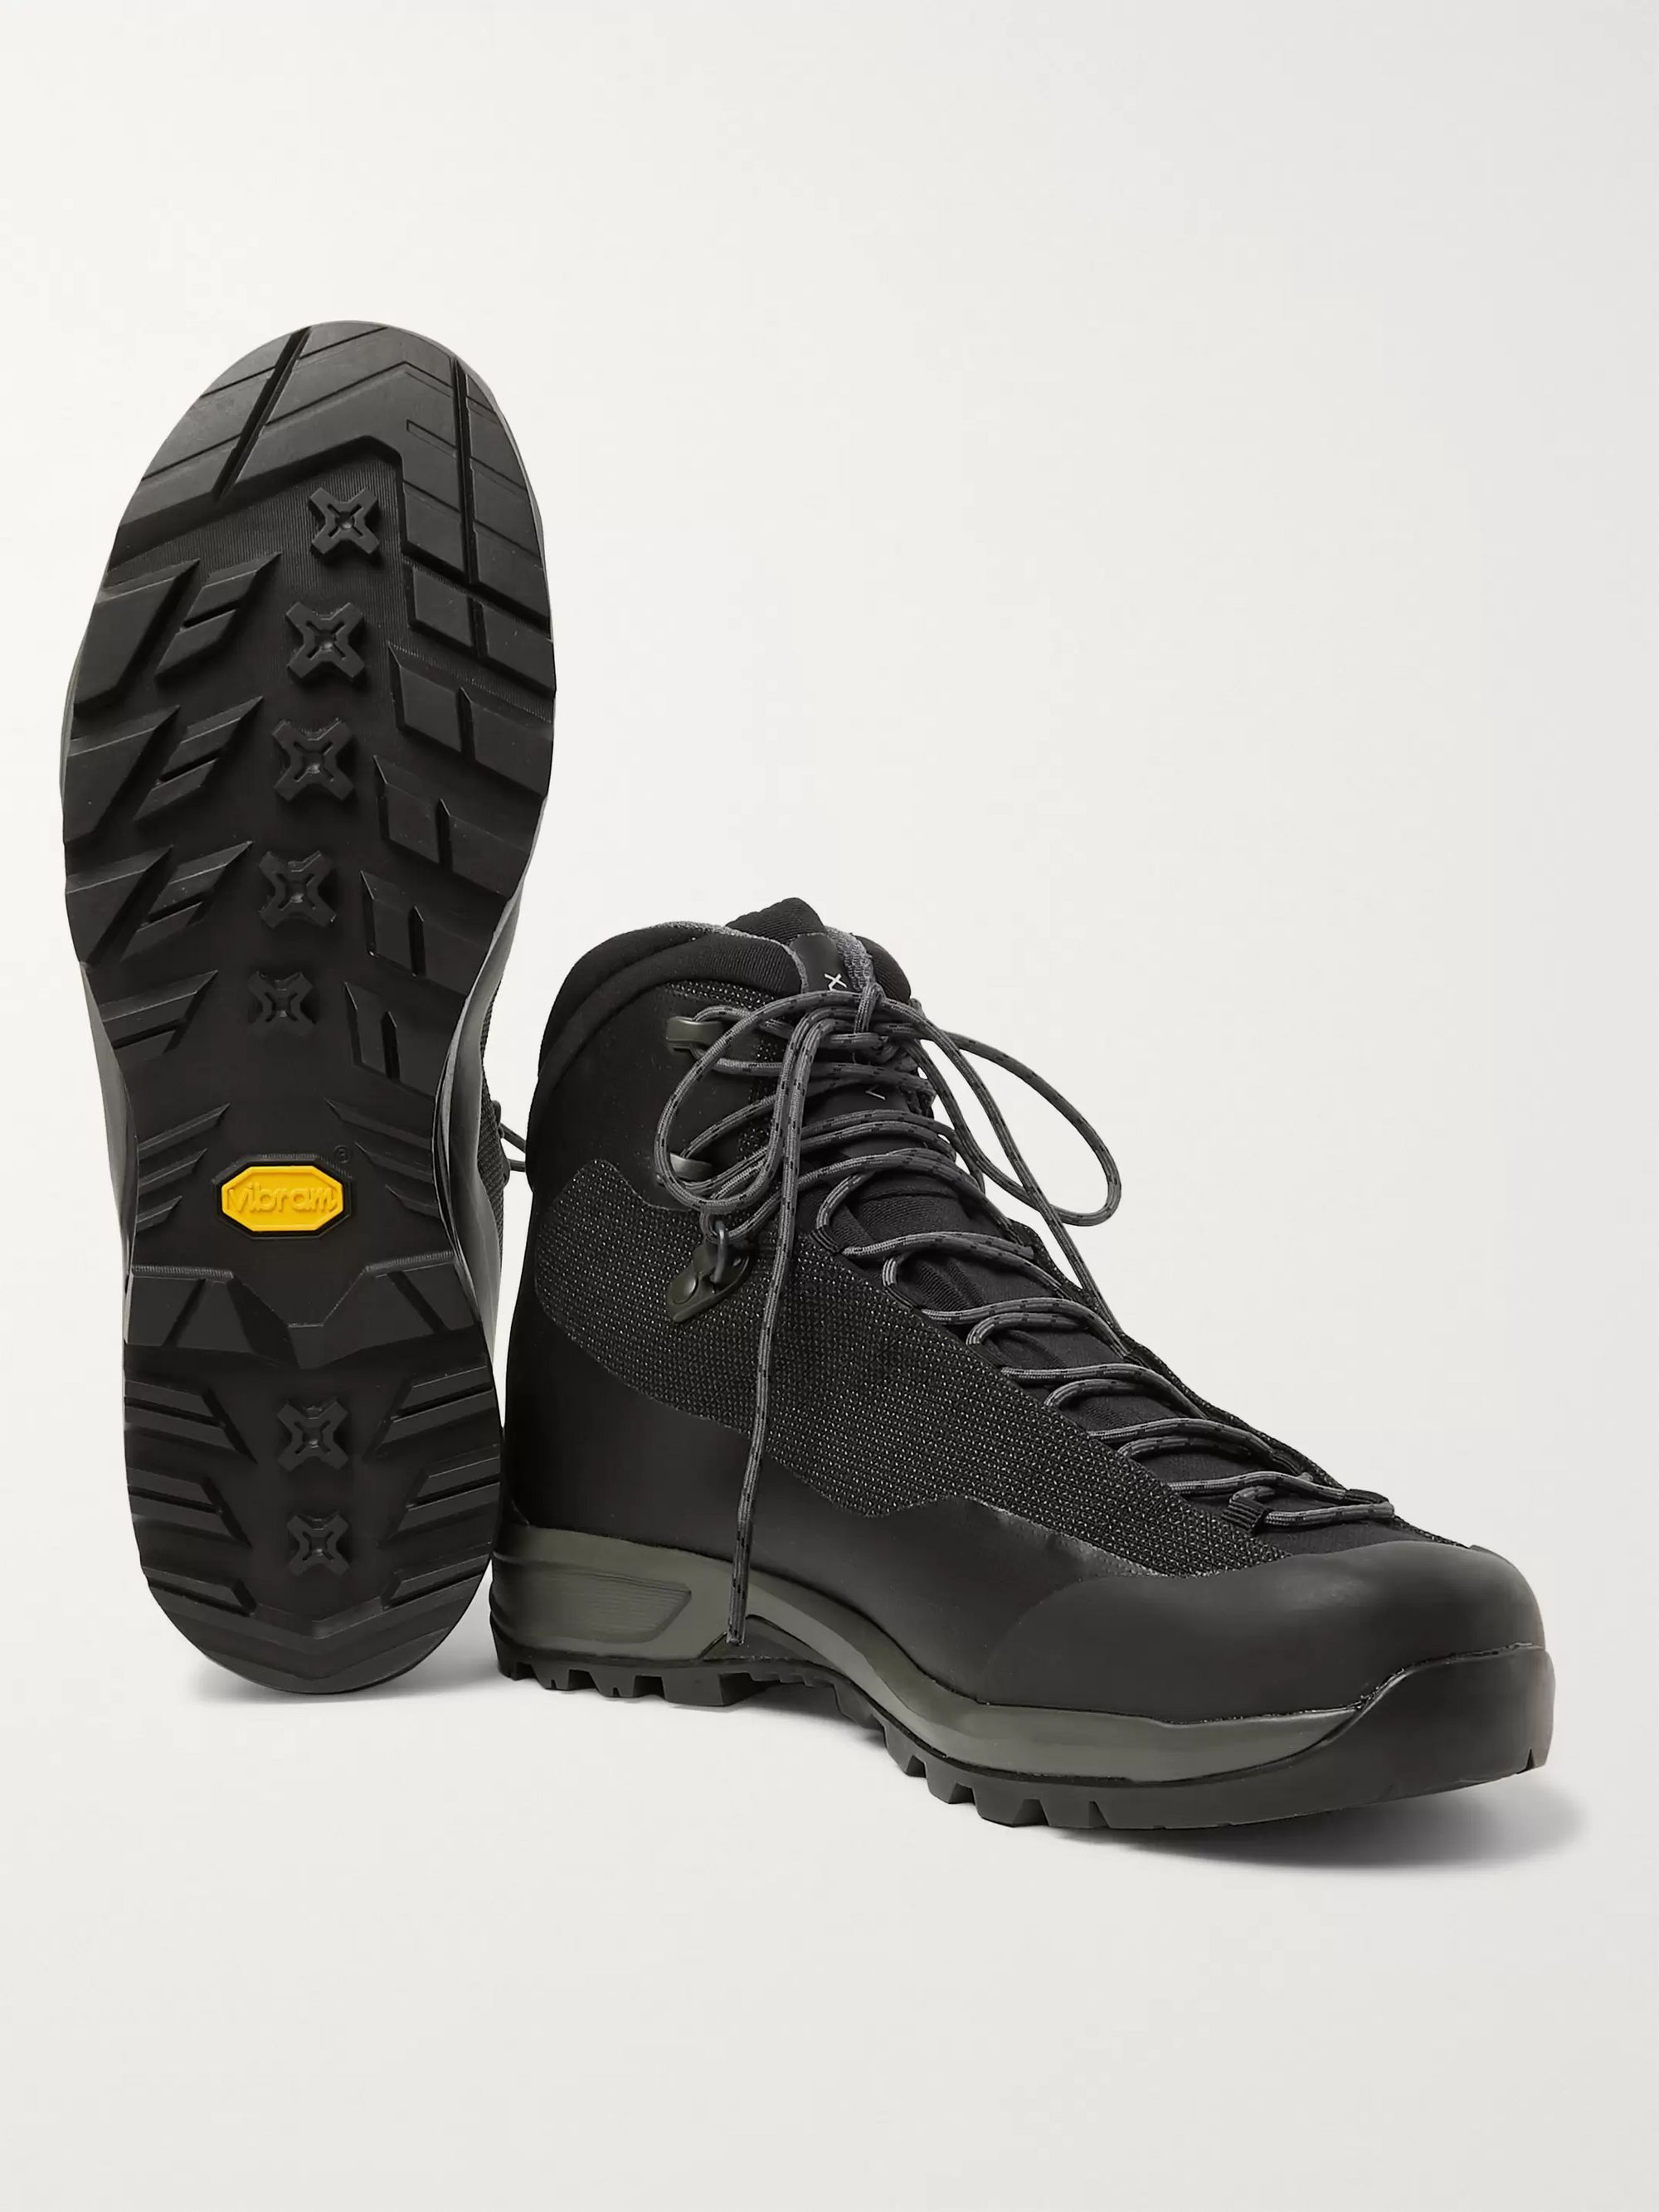 Arc'teryx Acrux TR GTX Rubber-Trimmed SuperFabric Hiking Boots